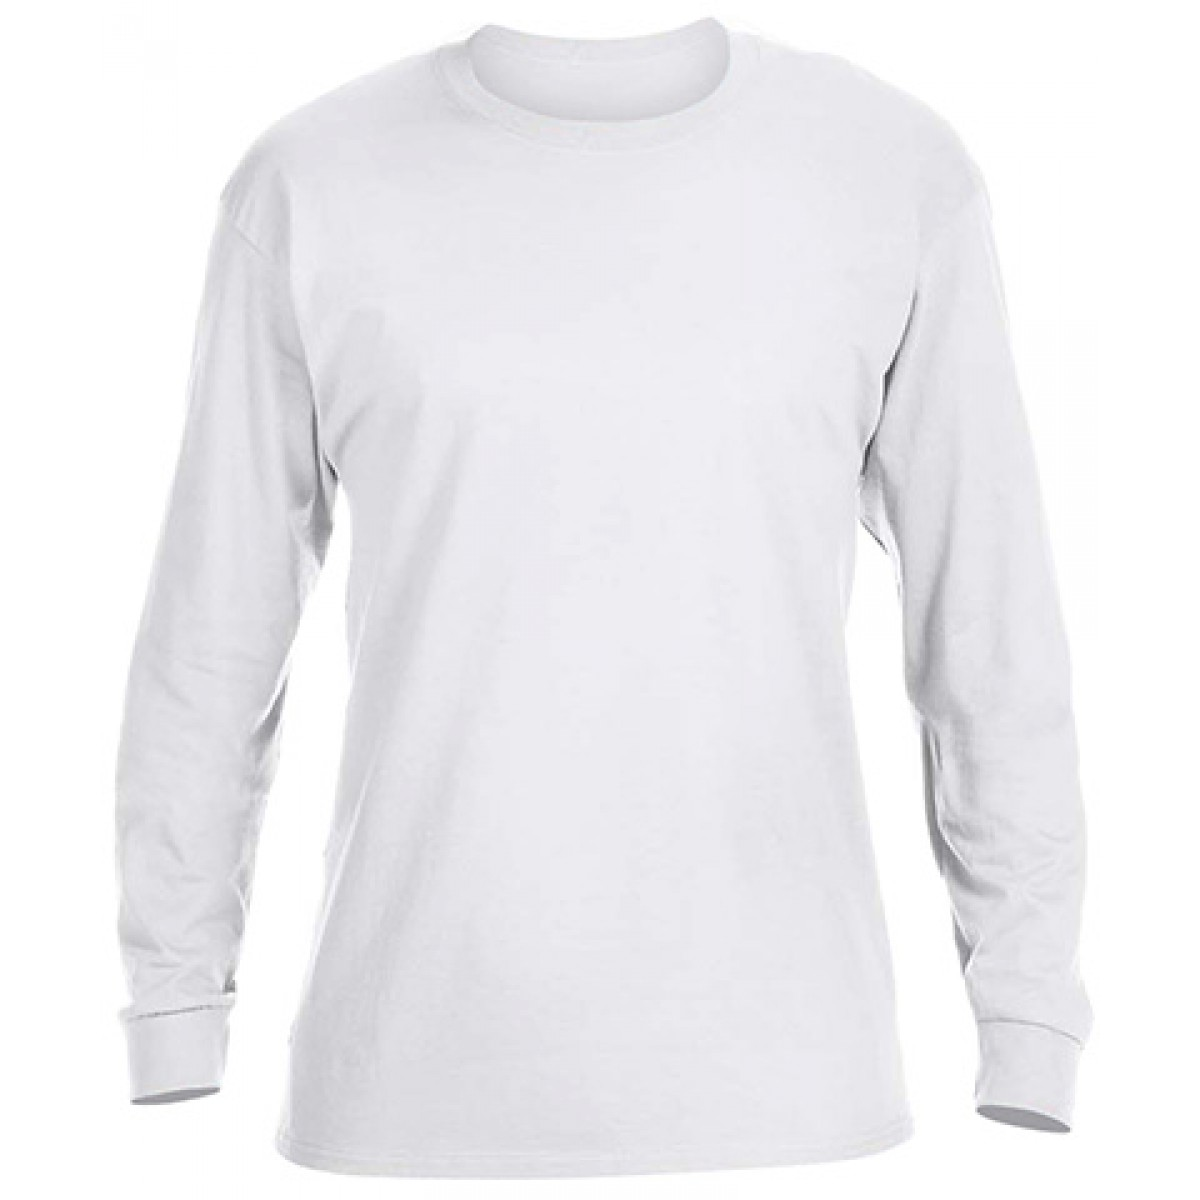 Heavy Cotton Long-Sleeve Adidas Shirt-White-XL